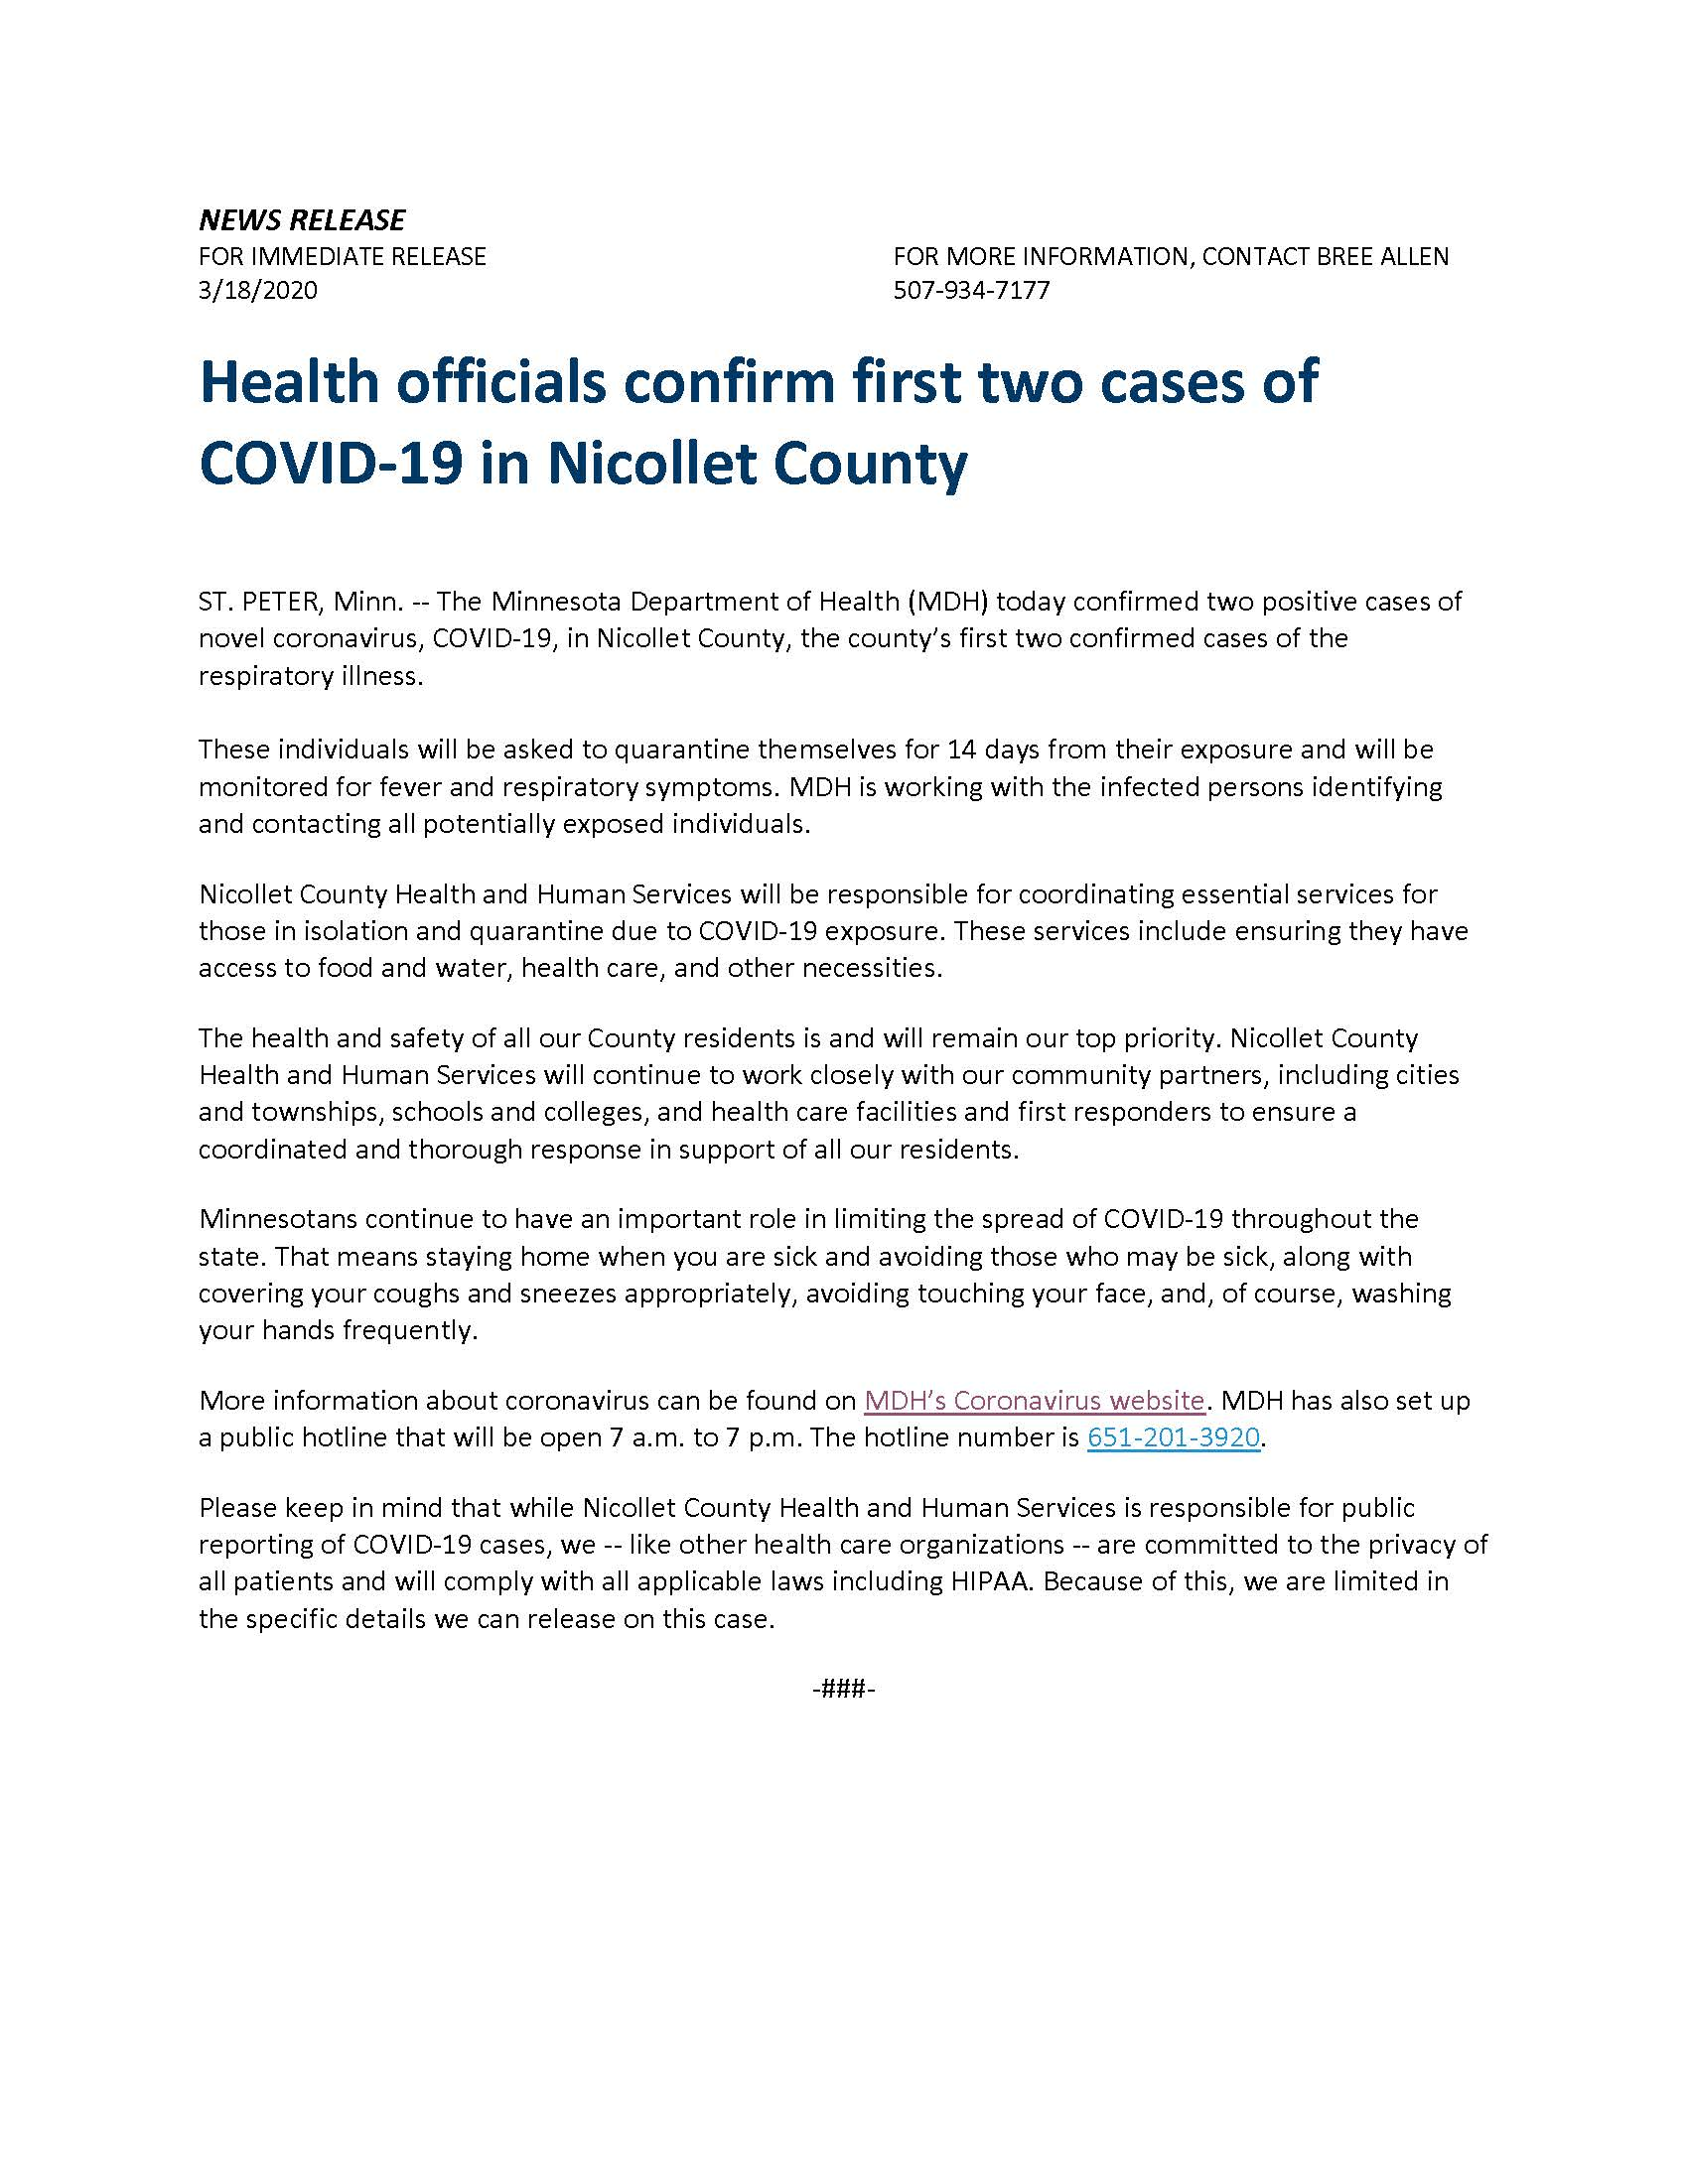 Health officials confirm first two cases of COVID-19 in Nicollet County